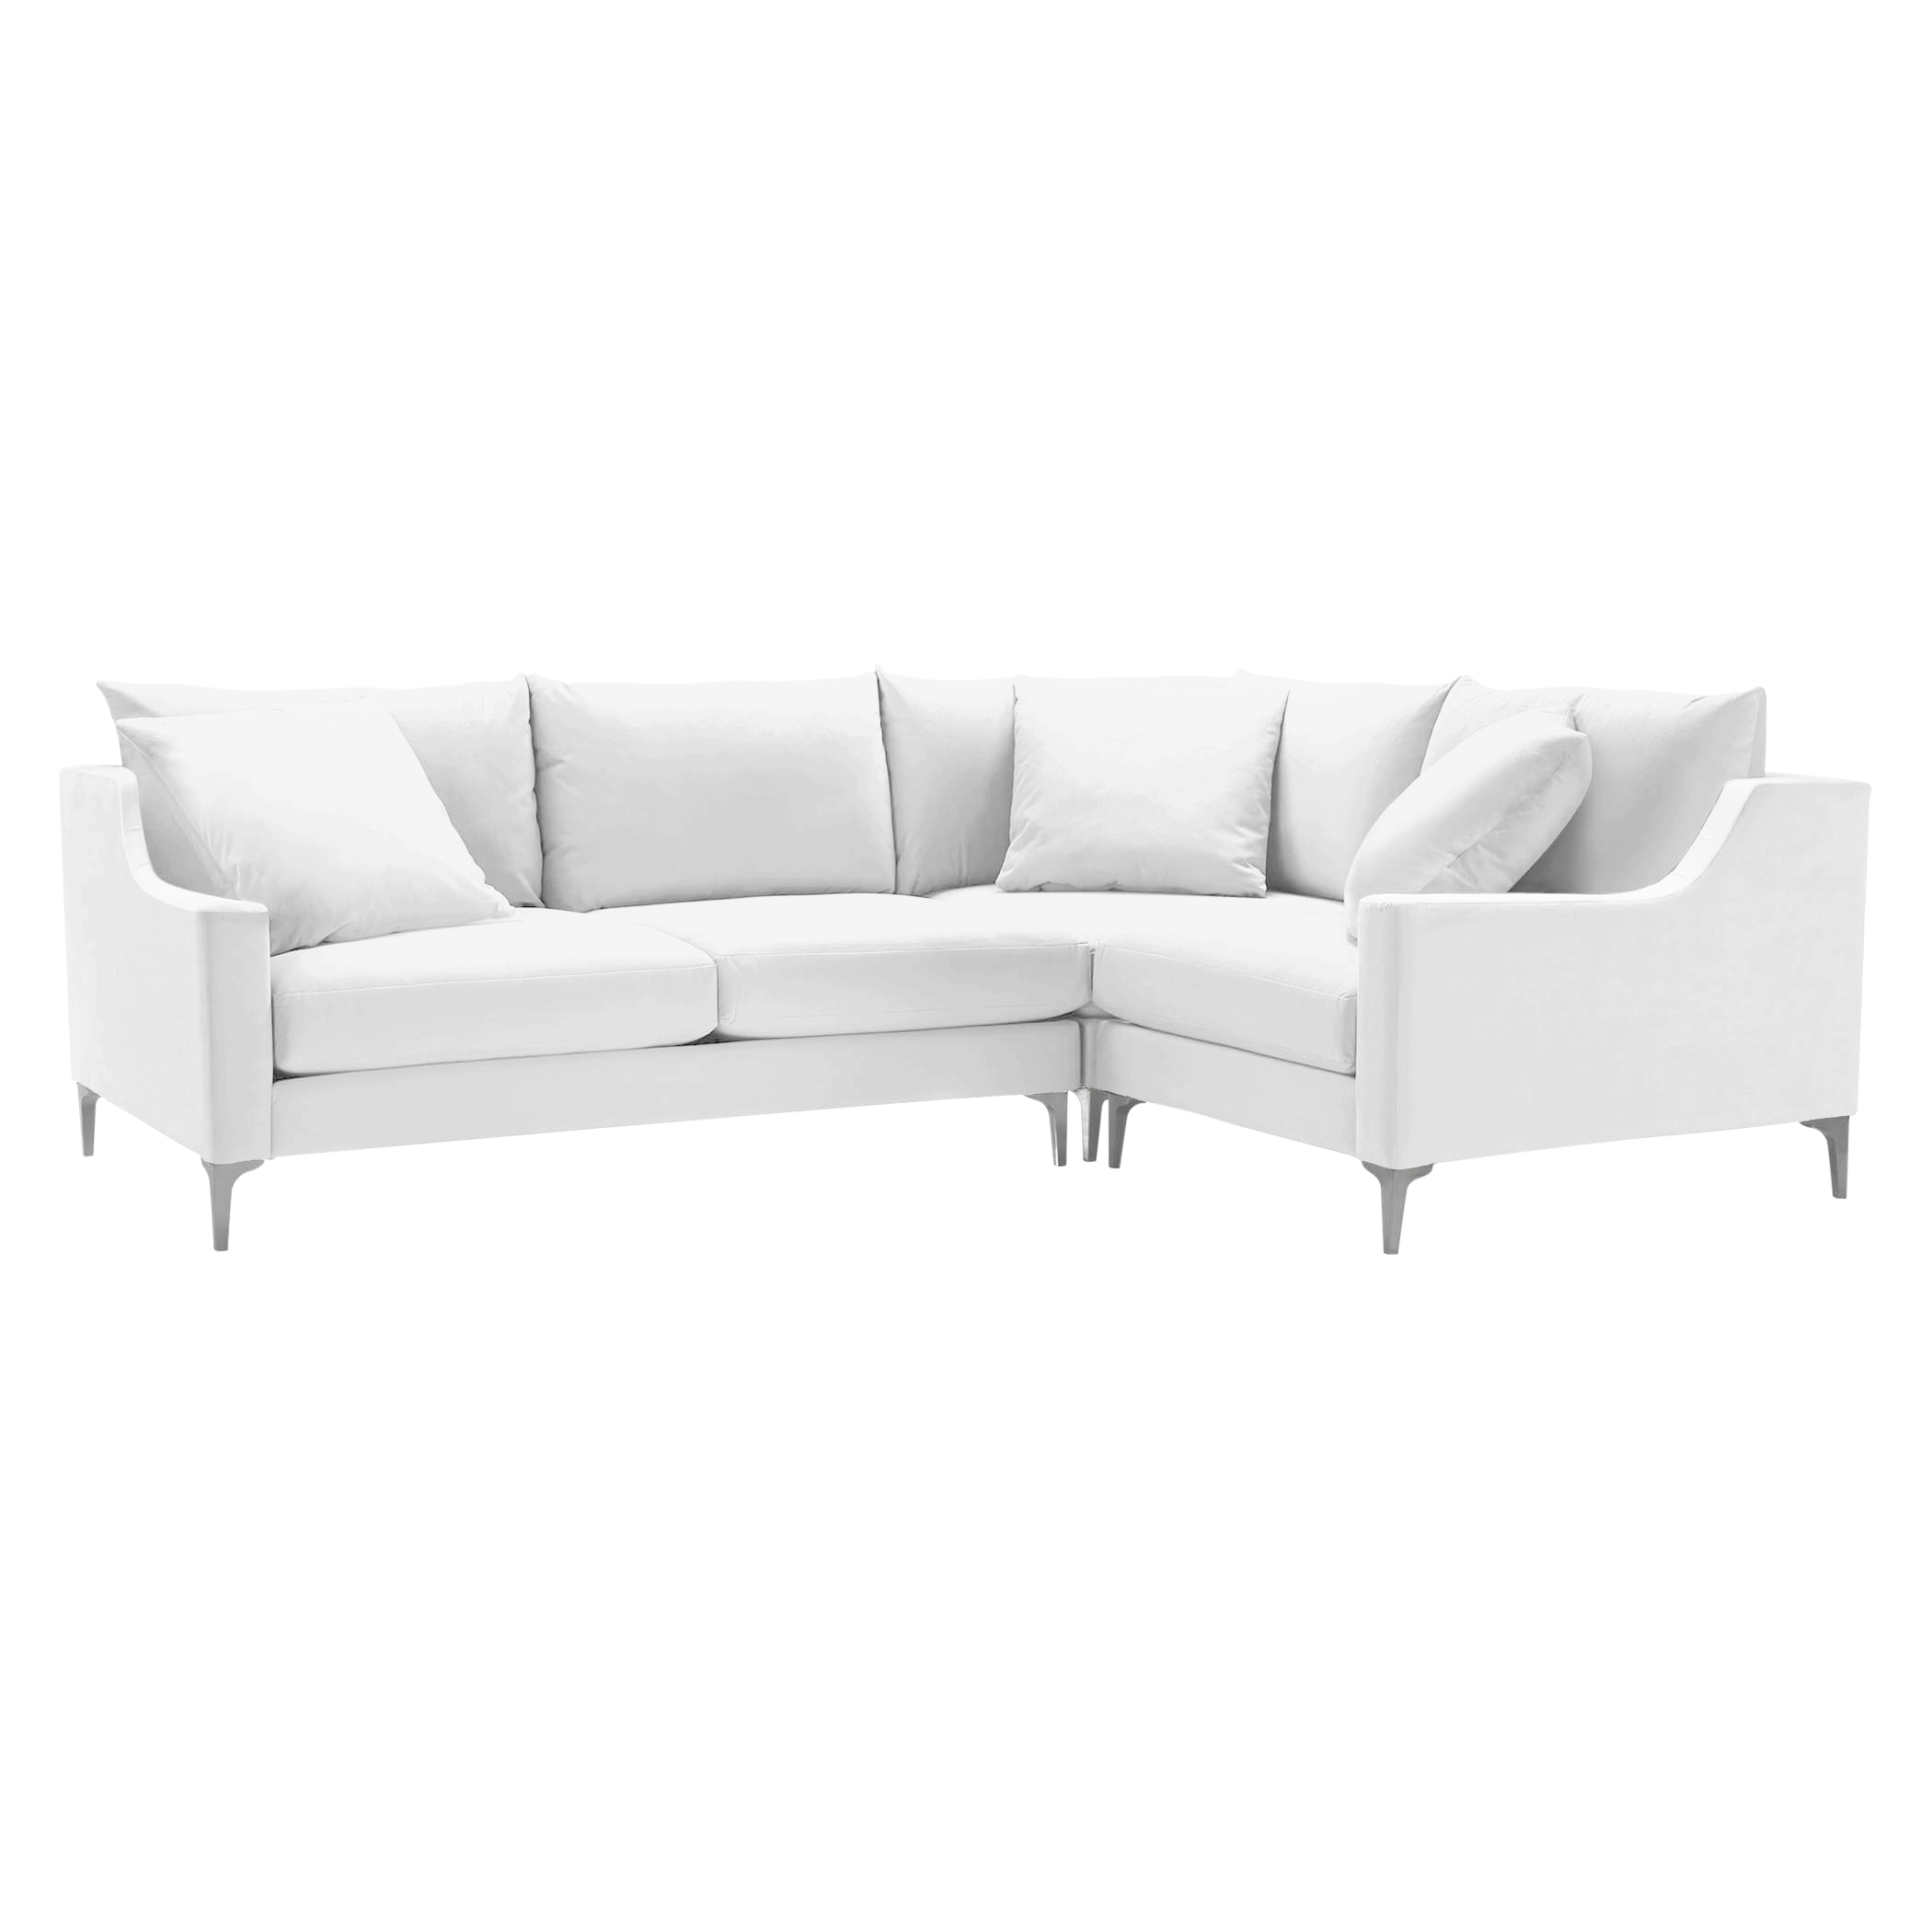 Details Slope Arm Corner Sectional